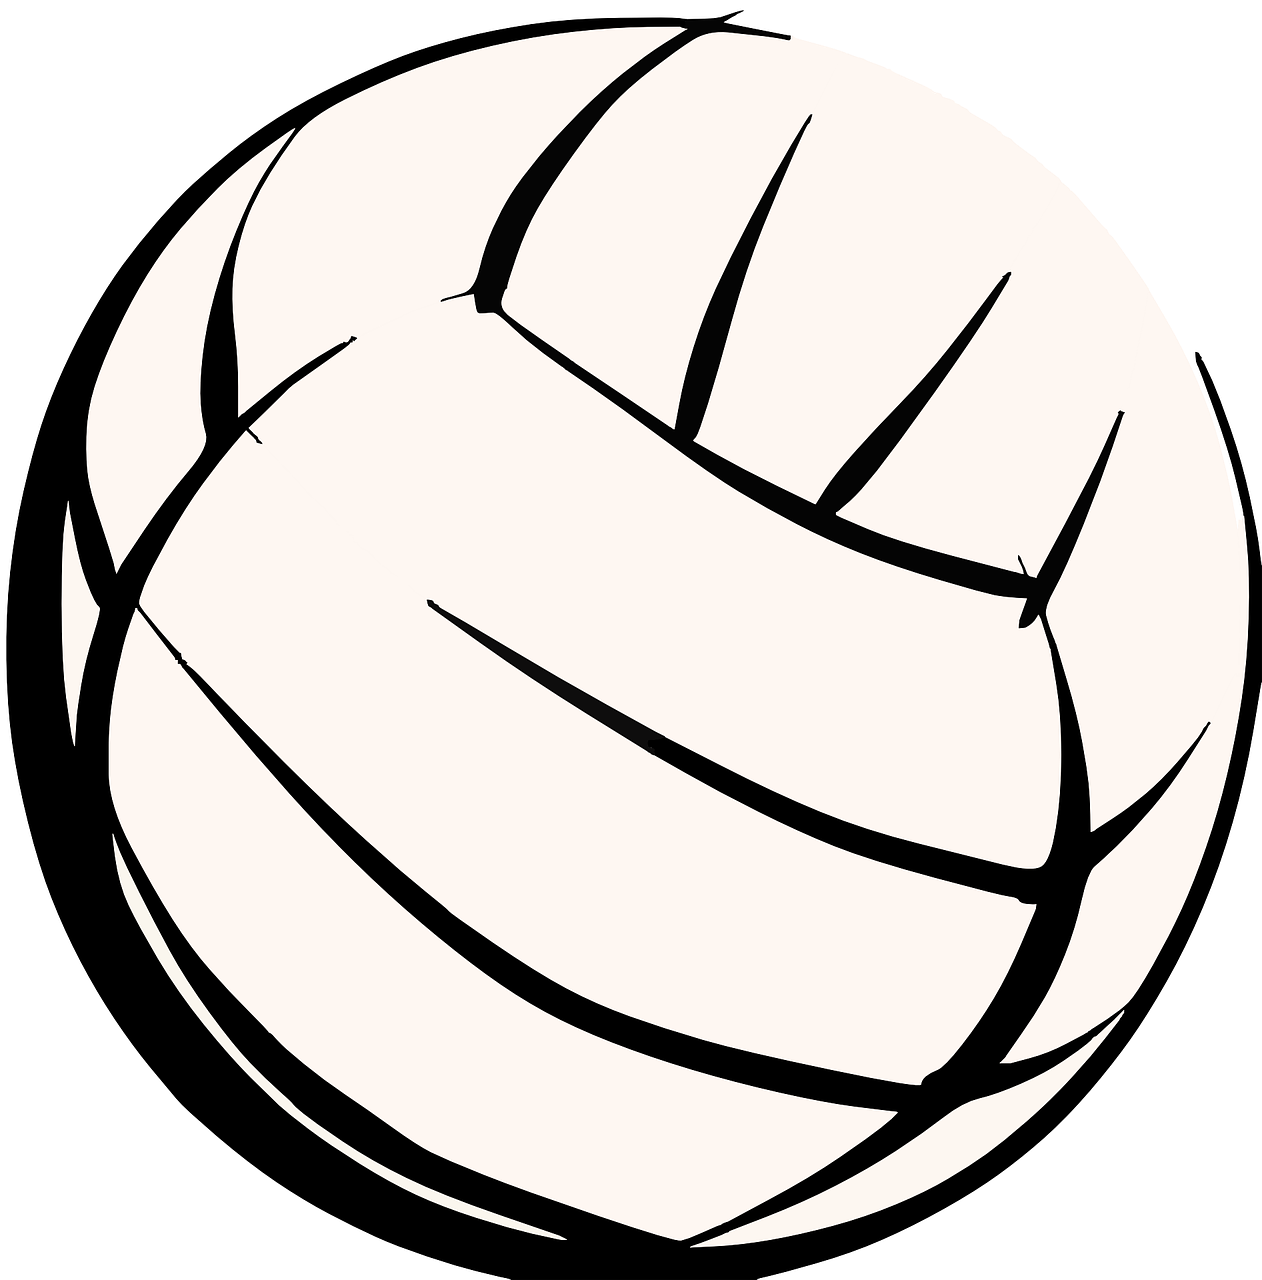 Pin By Starella On Volleyball Art With Images Free Clip Art Volleyball Images Volleyball Pictures